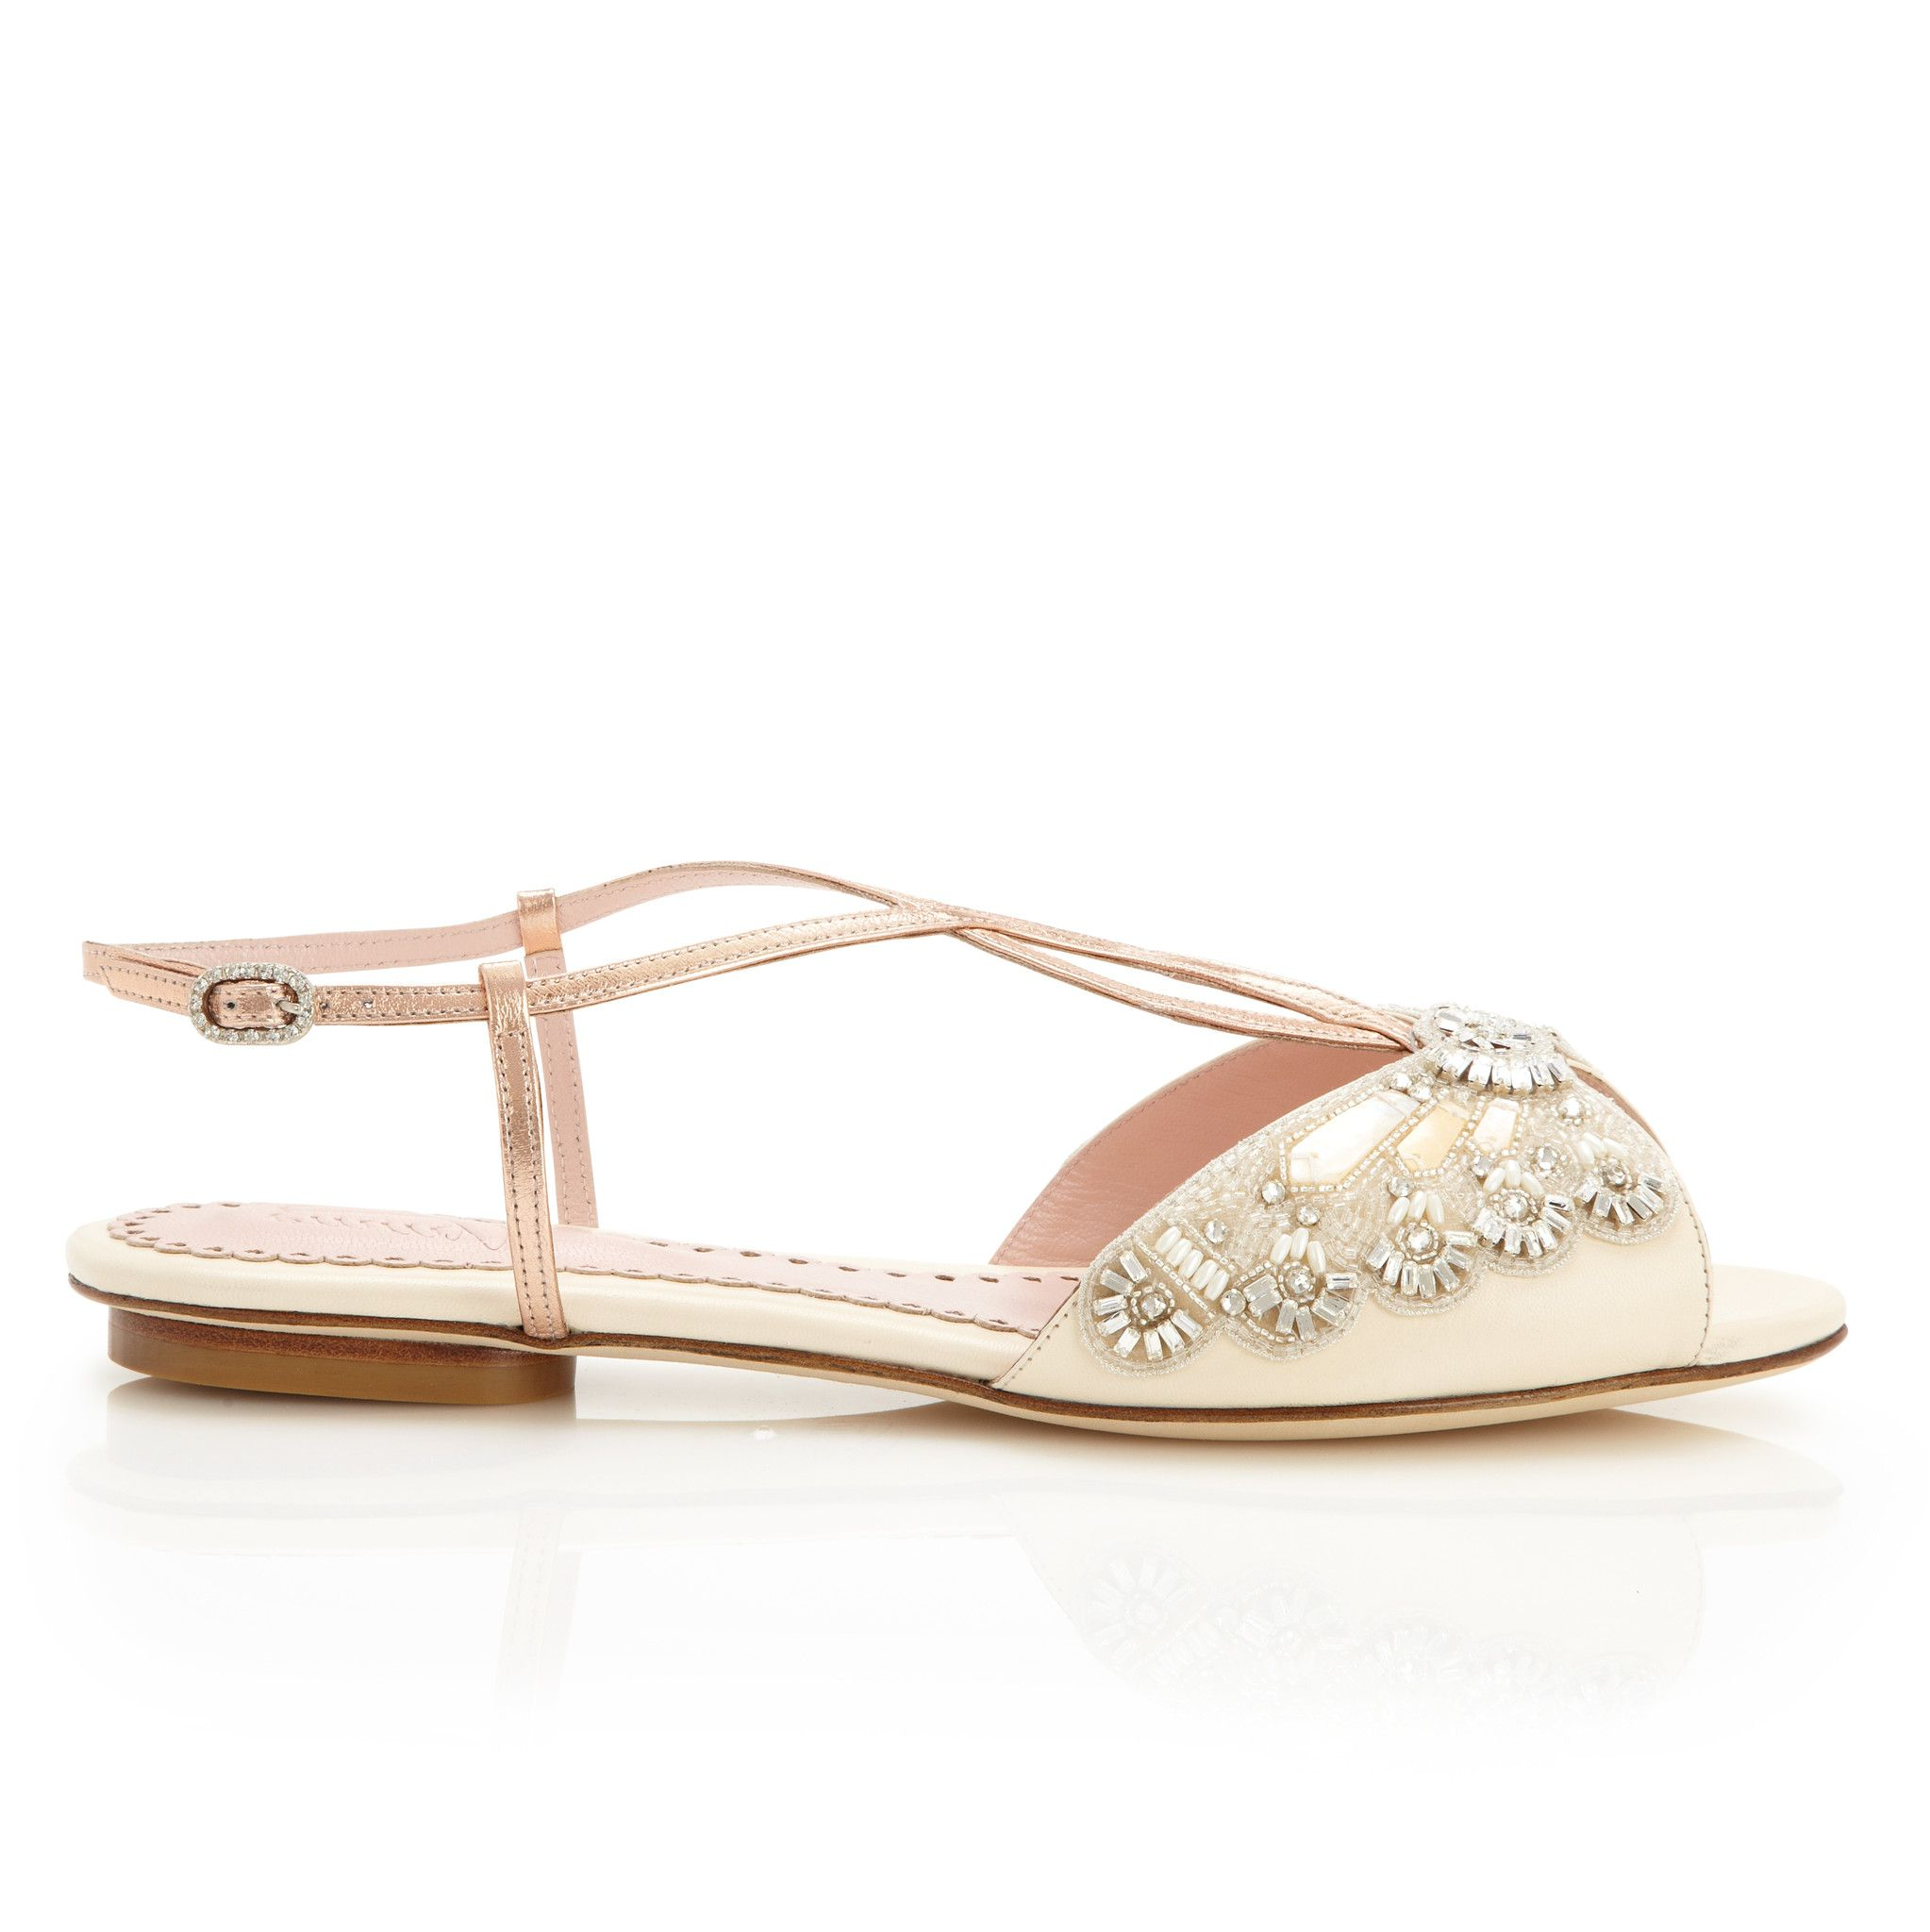 8be050385 Jude Bridal Party Shoes